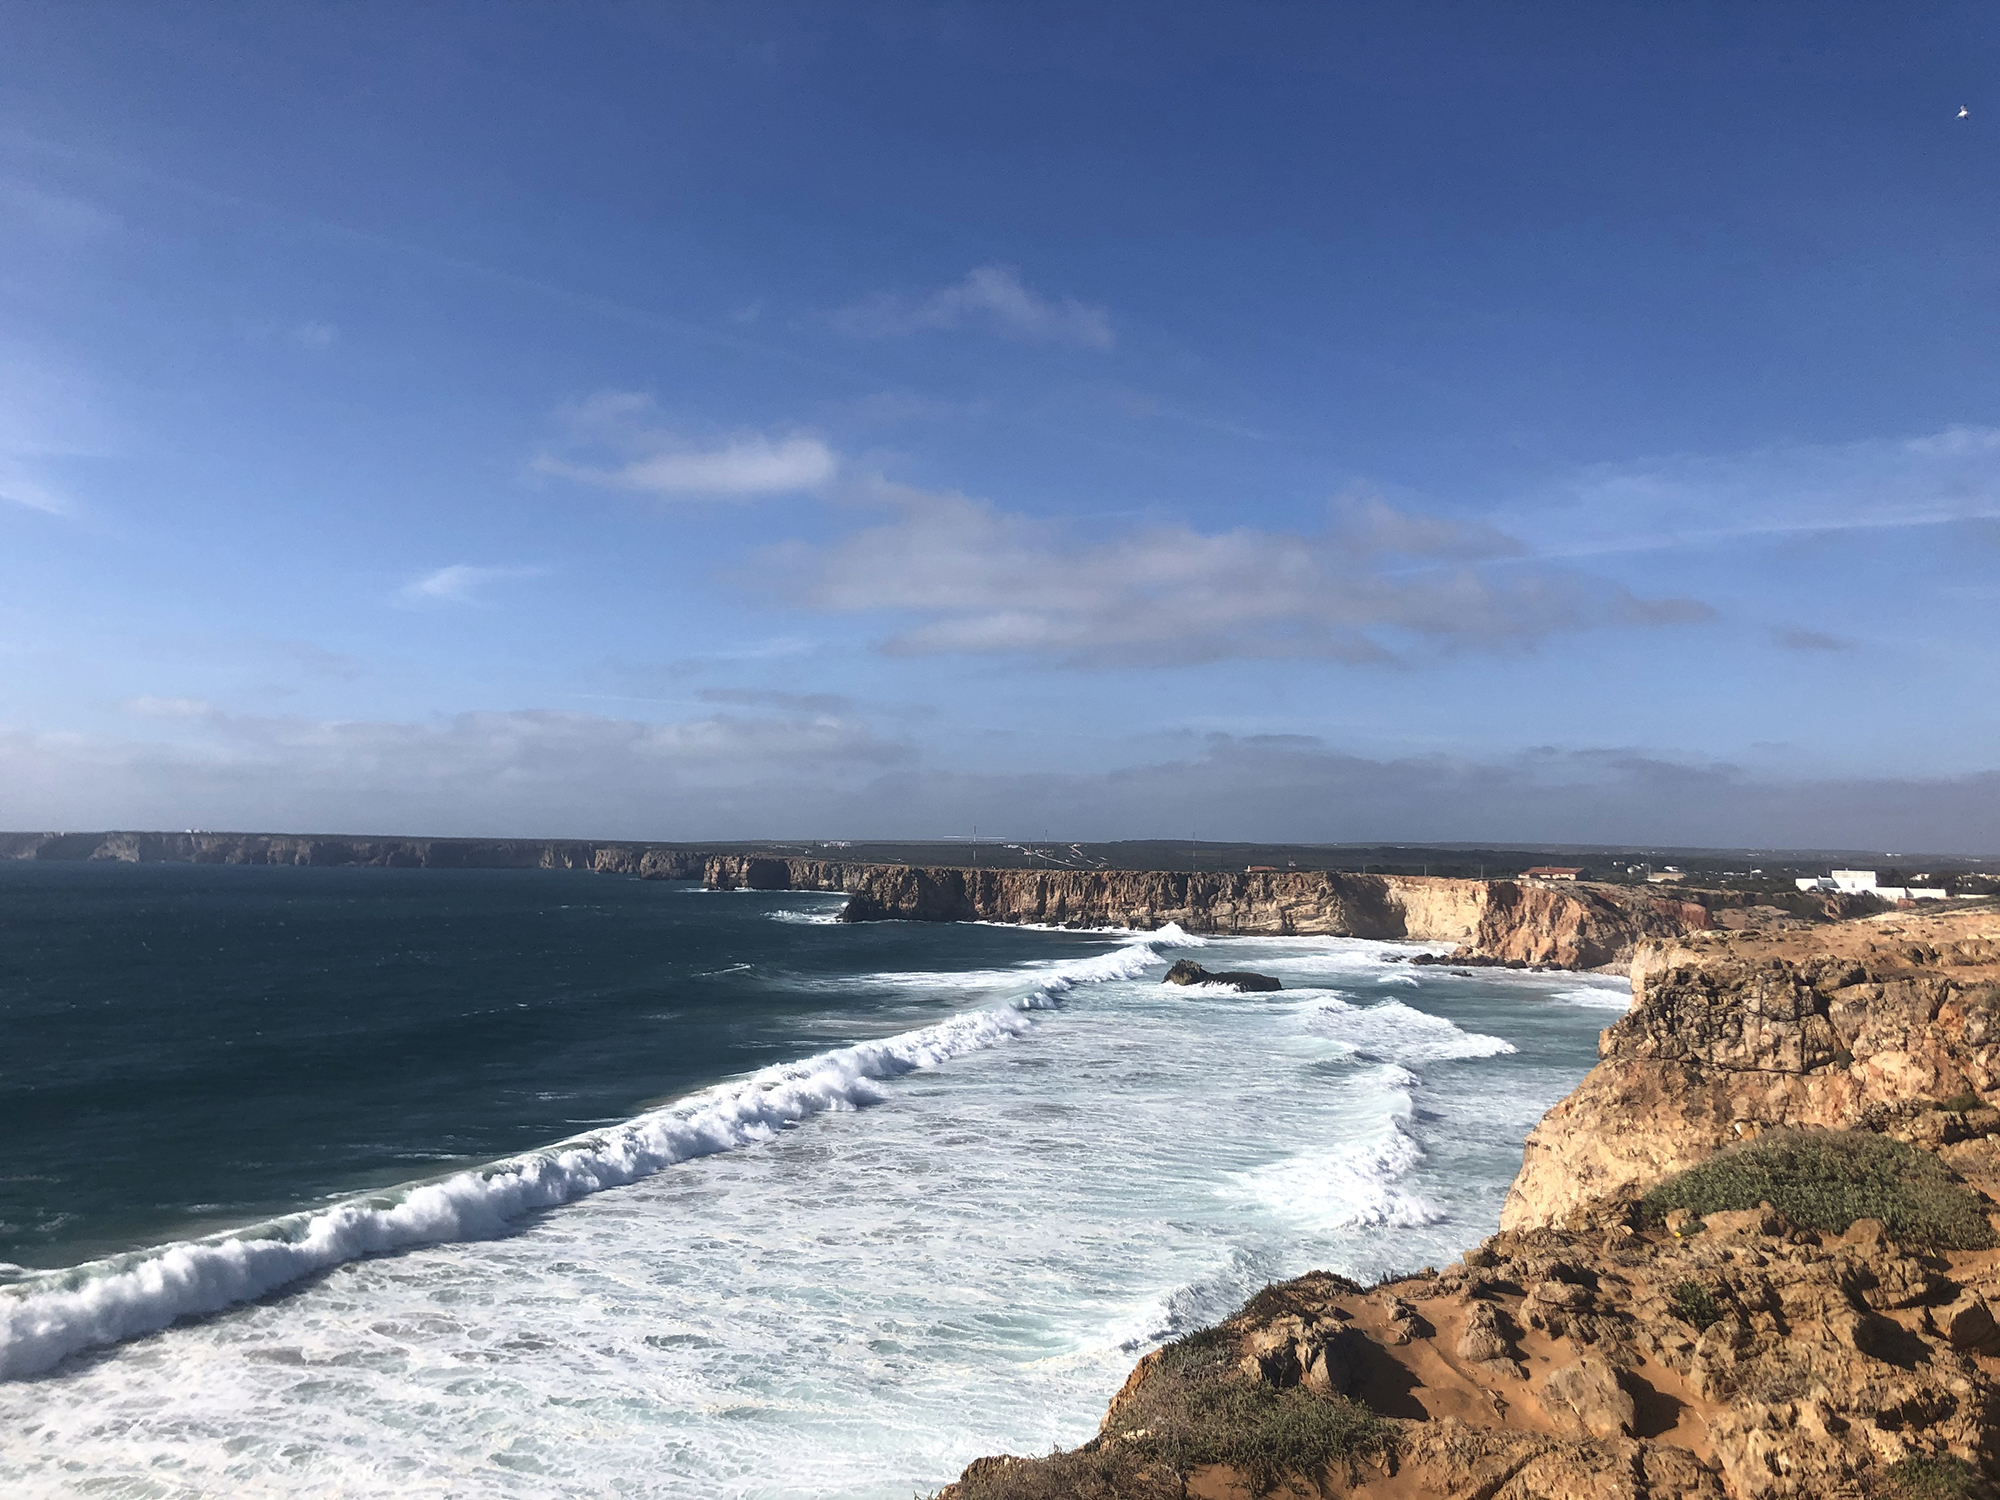 A view of the shoreline and the blue sky in Sagres, Portugal